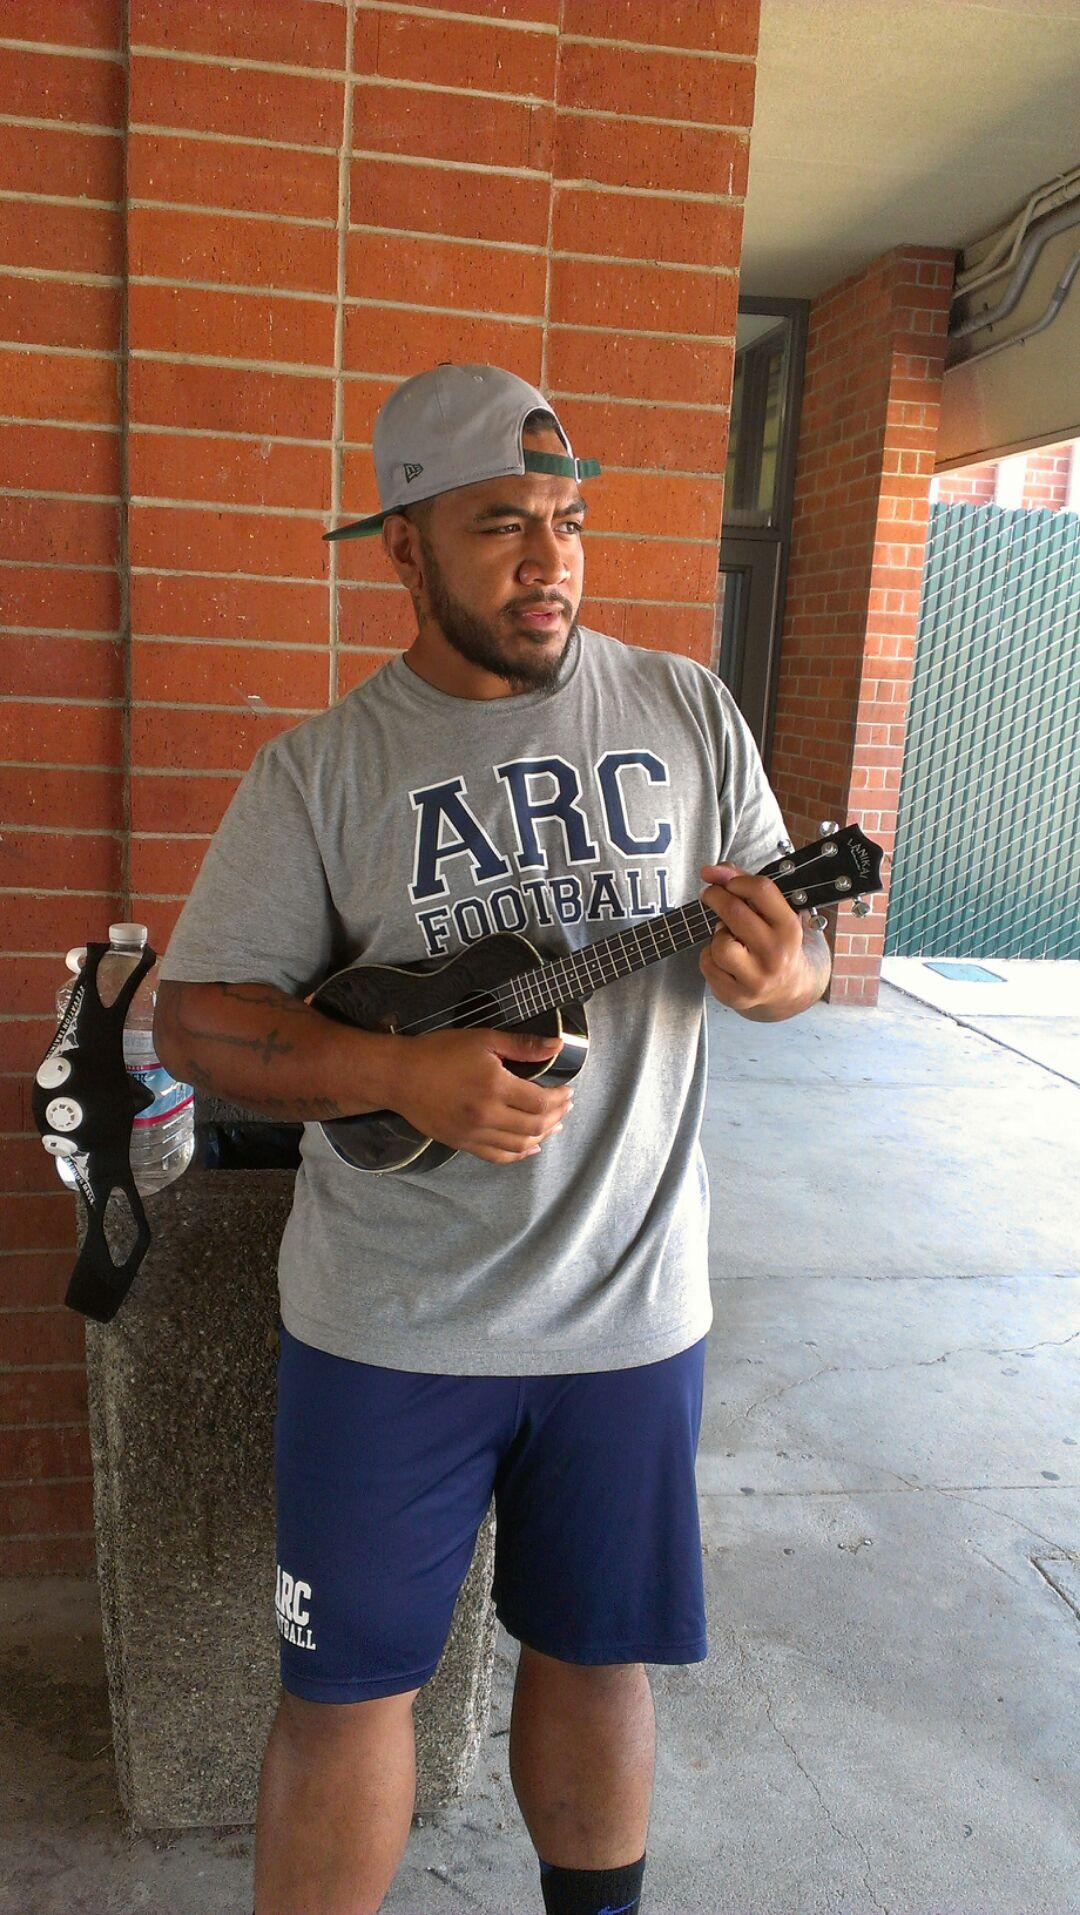 Sophomore football player Sione Umufuke playing some sweet sounds and enjoying some downtime between classes and practice. The ARC football team won their season opener on Saturday in Monterey 40-2 and will host rival Sacramento City College at Beaver stadium this Saturday for their home opener at 1 p.m. Photo by Ed Gebing